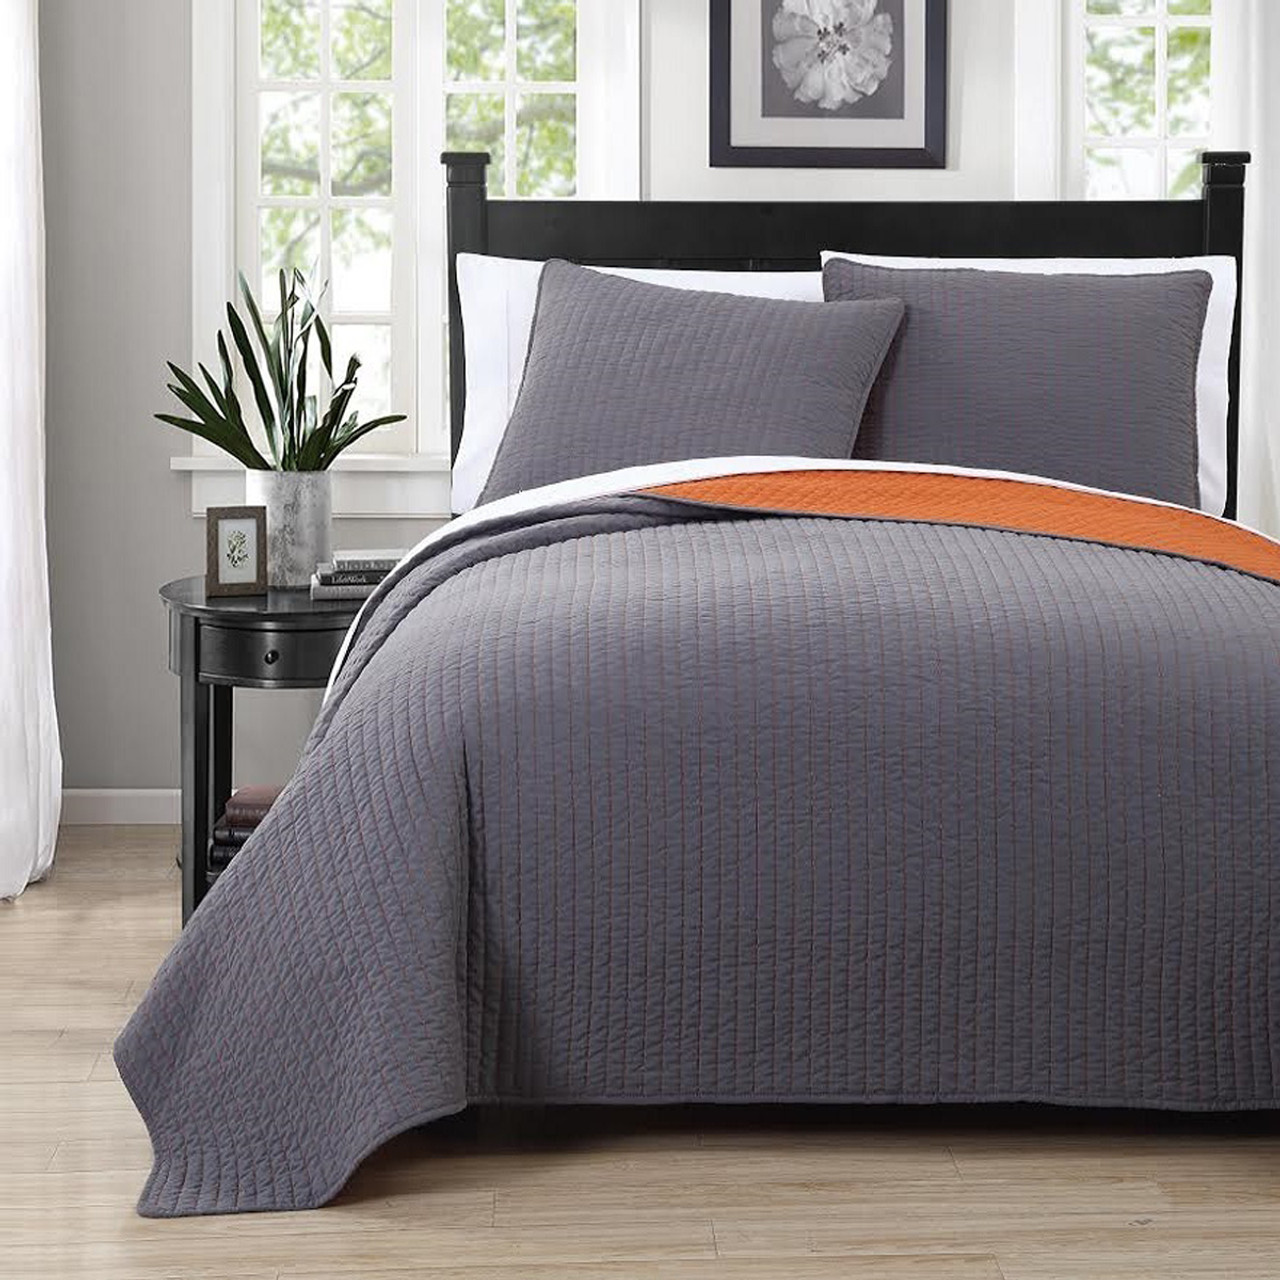 Attractive ... Project Runway Queen Coverlets Image Gray/Orange ...